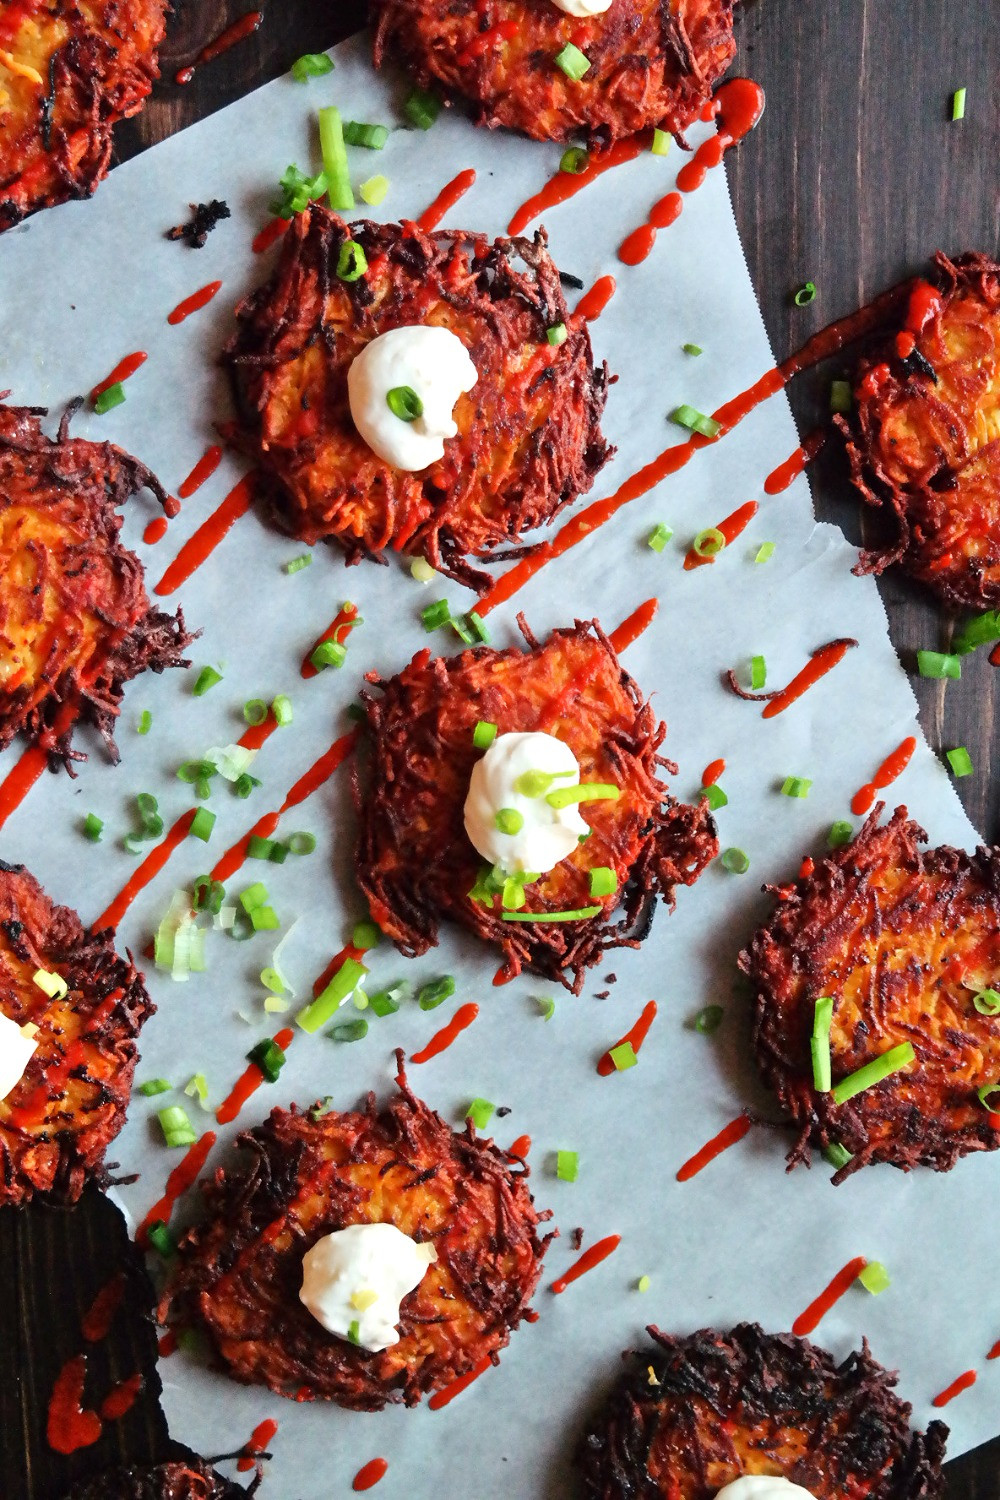 Sweet Potato & Parsnip Latkes with a Parmesan Goat Cheese Dollop | eatlovegarlic.com @eatlovegarlic